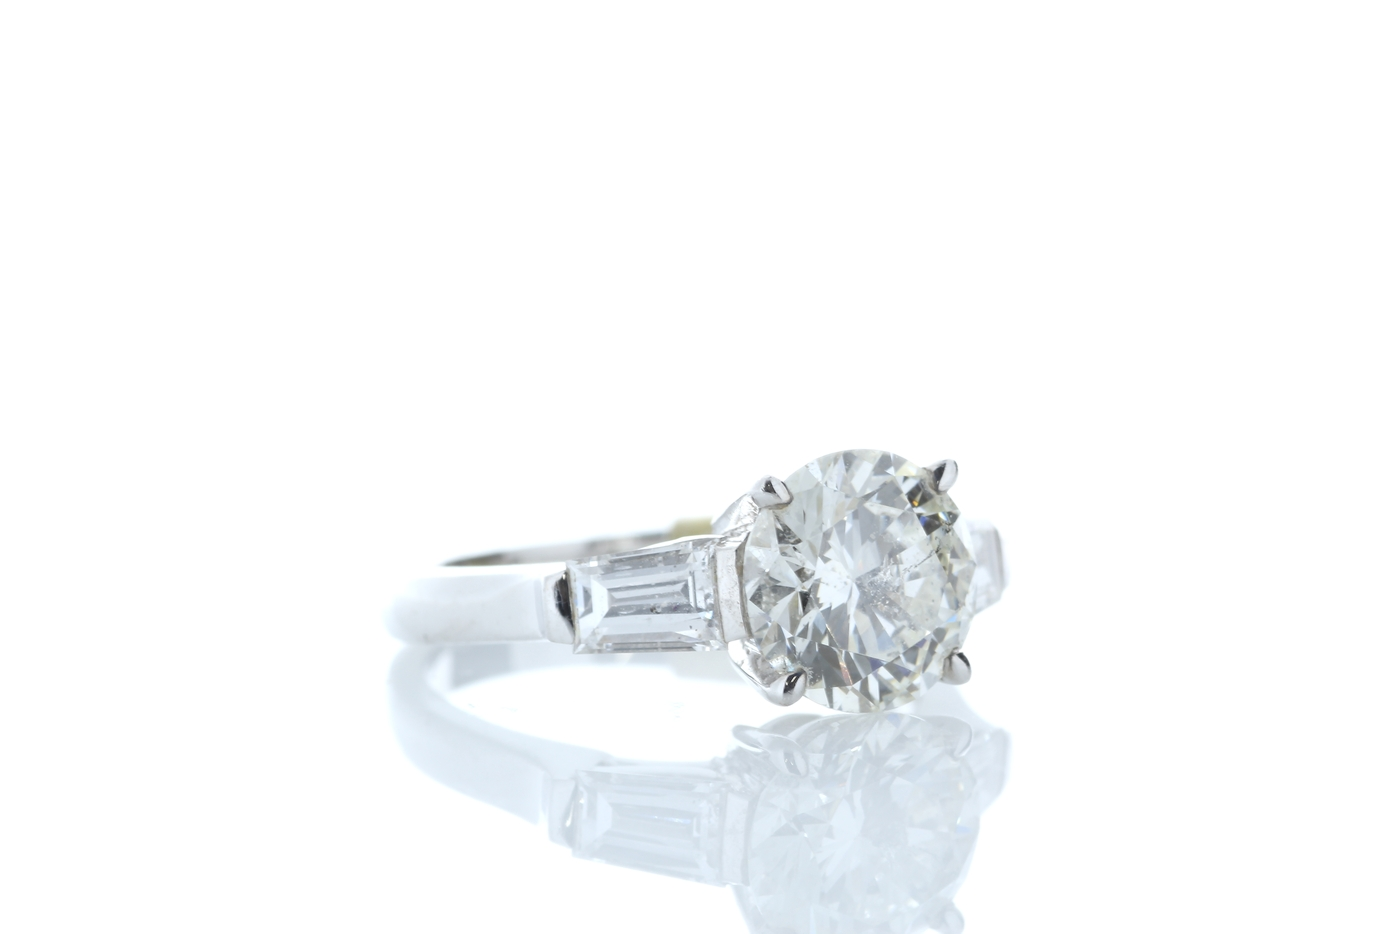 18ct White Gold Baguette Shoulders Diamond Ring 2.20 Carats - Image 4 of 5